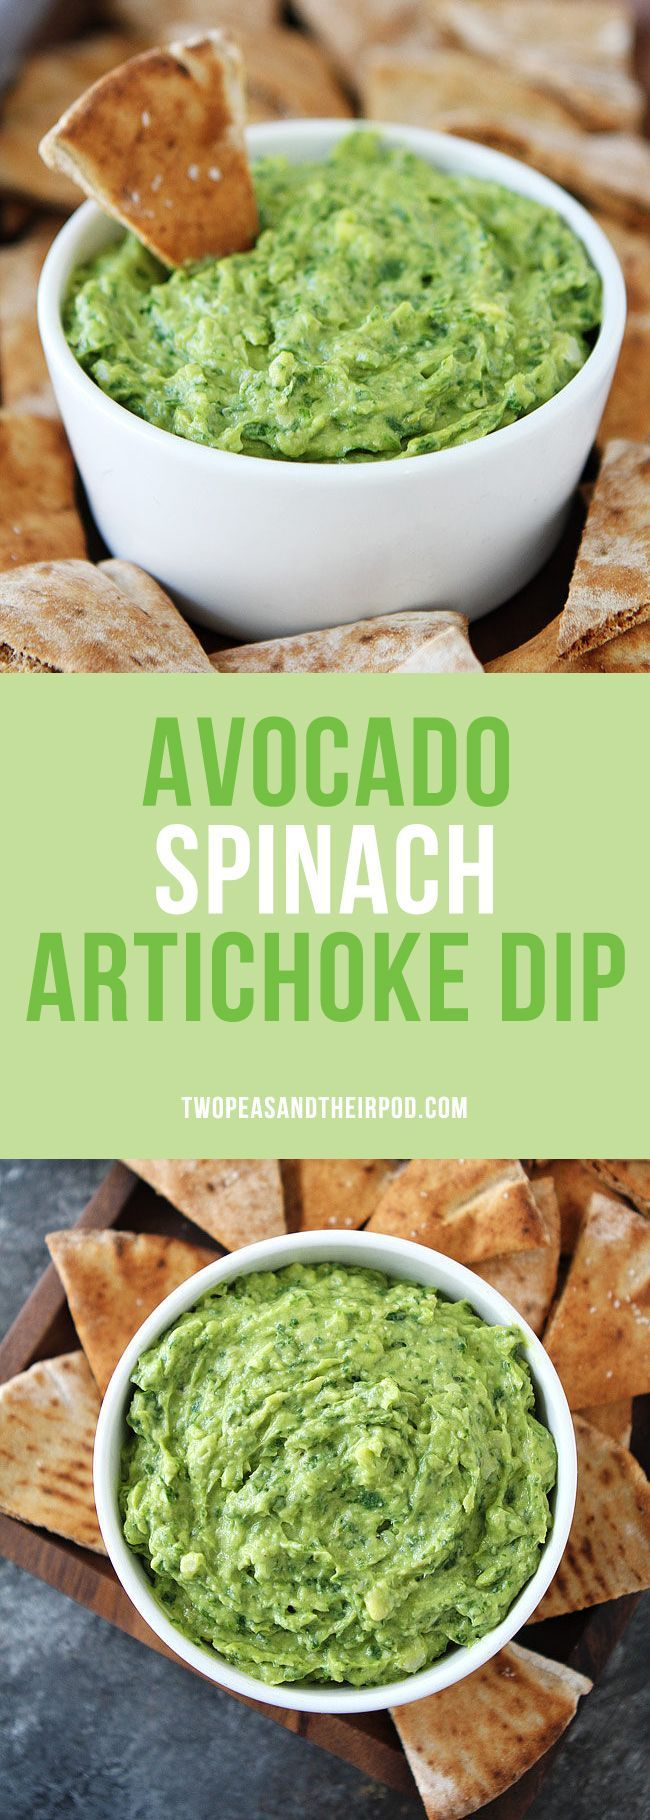 Avocado Spinach Artichoke Dip is the perfect dip for parties, potlucks, game day, and every day snacking. It is vegan, gluten-free, dairy-free, and SO delicious! Serve with pita chips, crackers, or cu